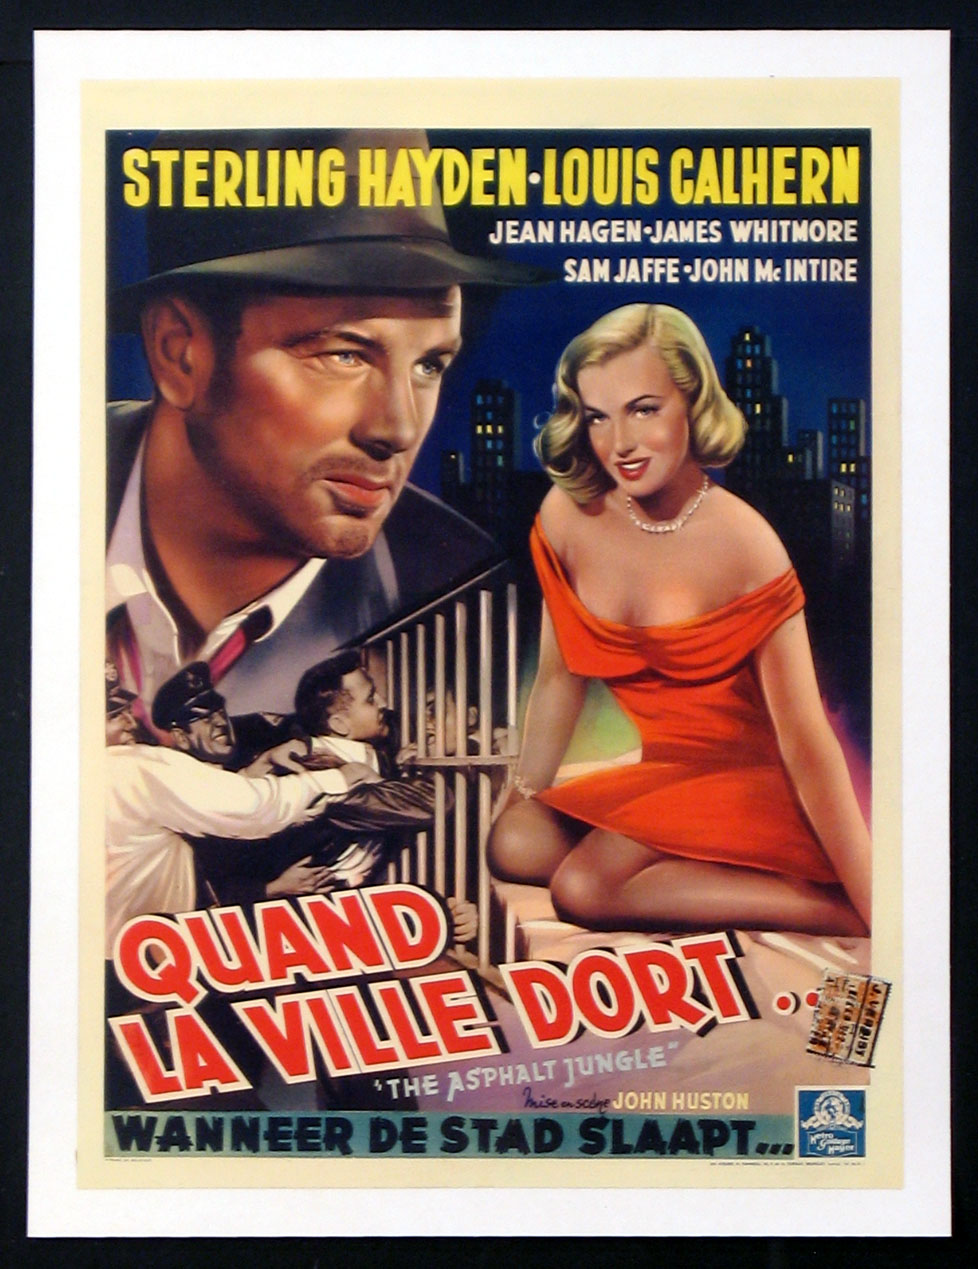 ASPHALT JUNGLE, THE (The Asphalt Jungle) @ FilmPosters.com